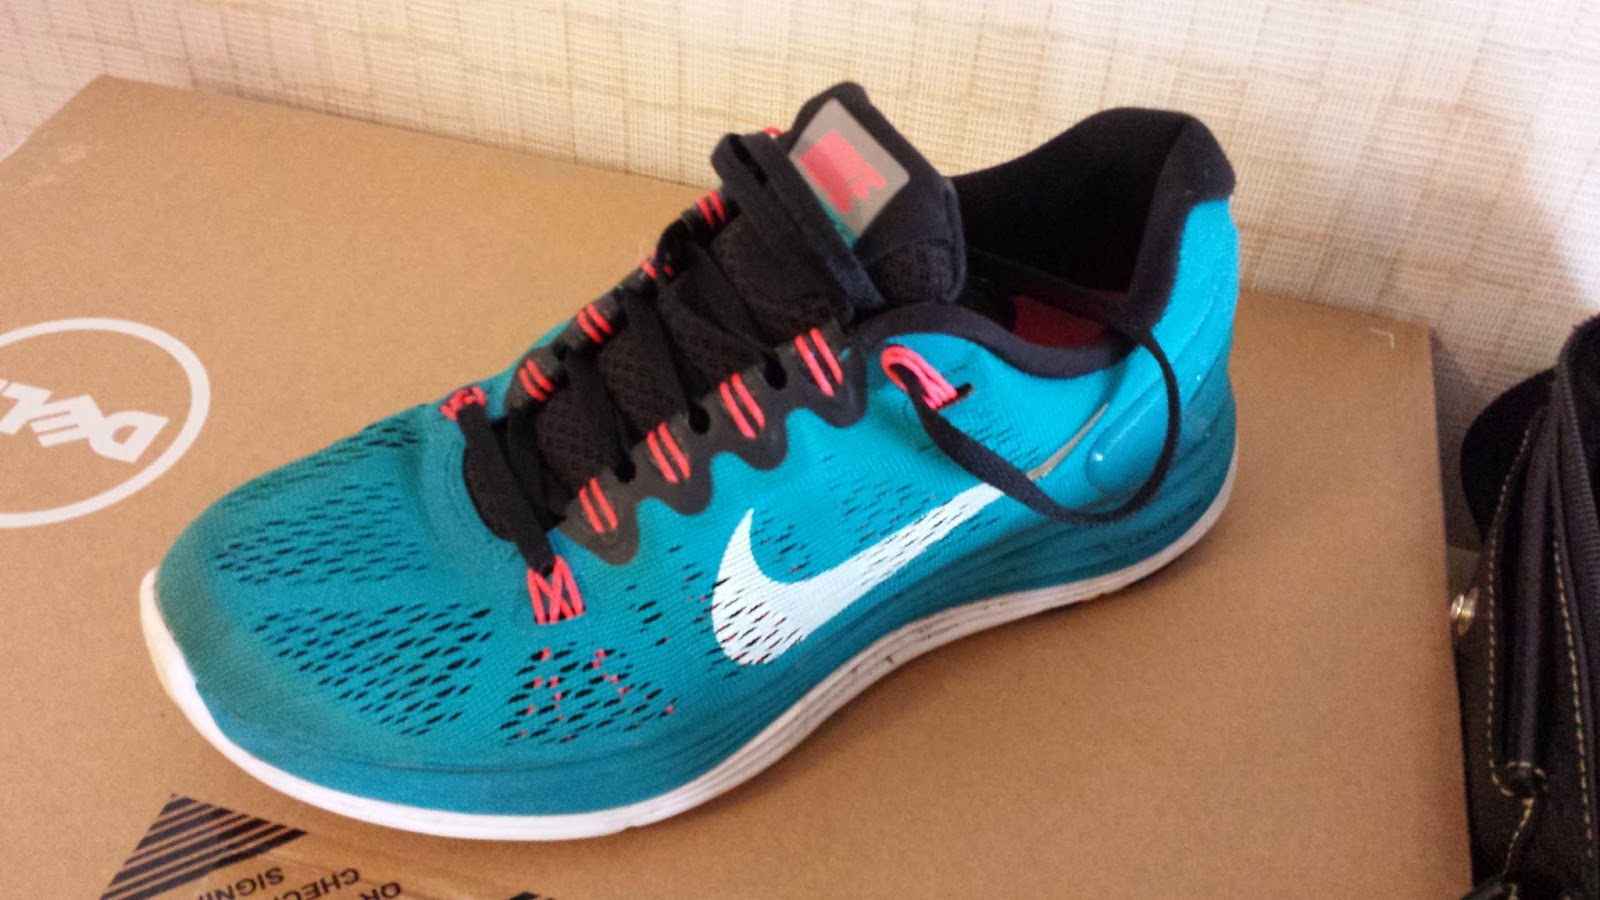 online retailer 0f598 a5e57 Nike Lunarglide 5 - My Current Training Shoes   Window Shopping at Finish  Line